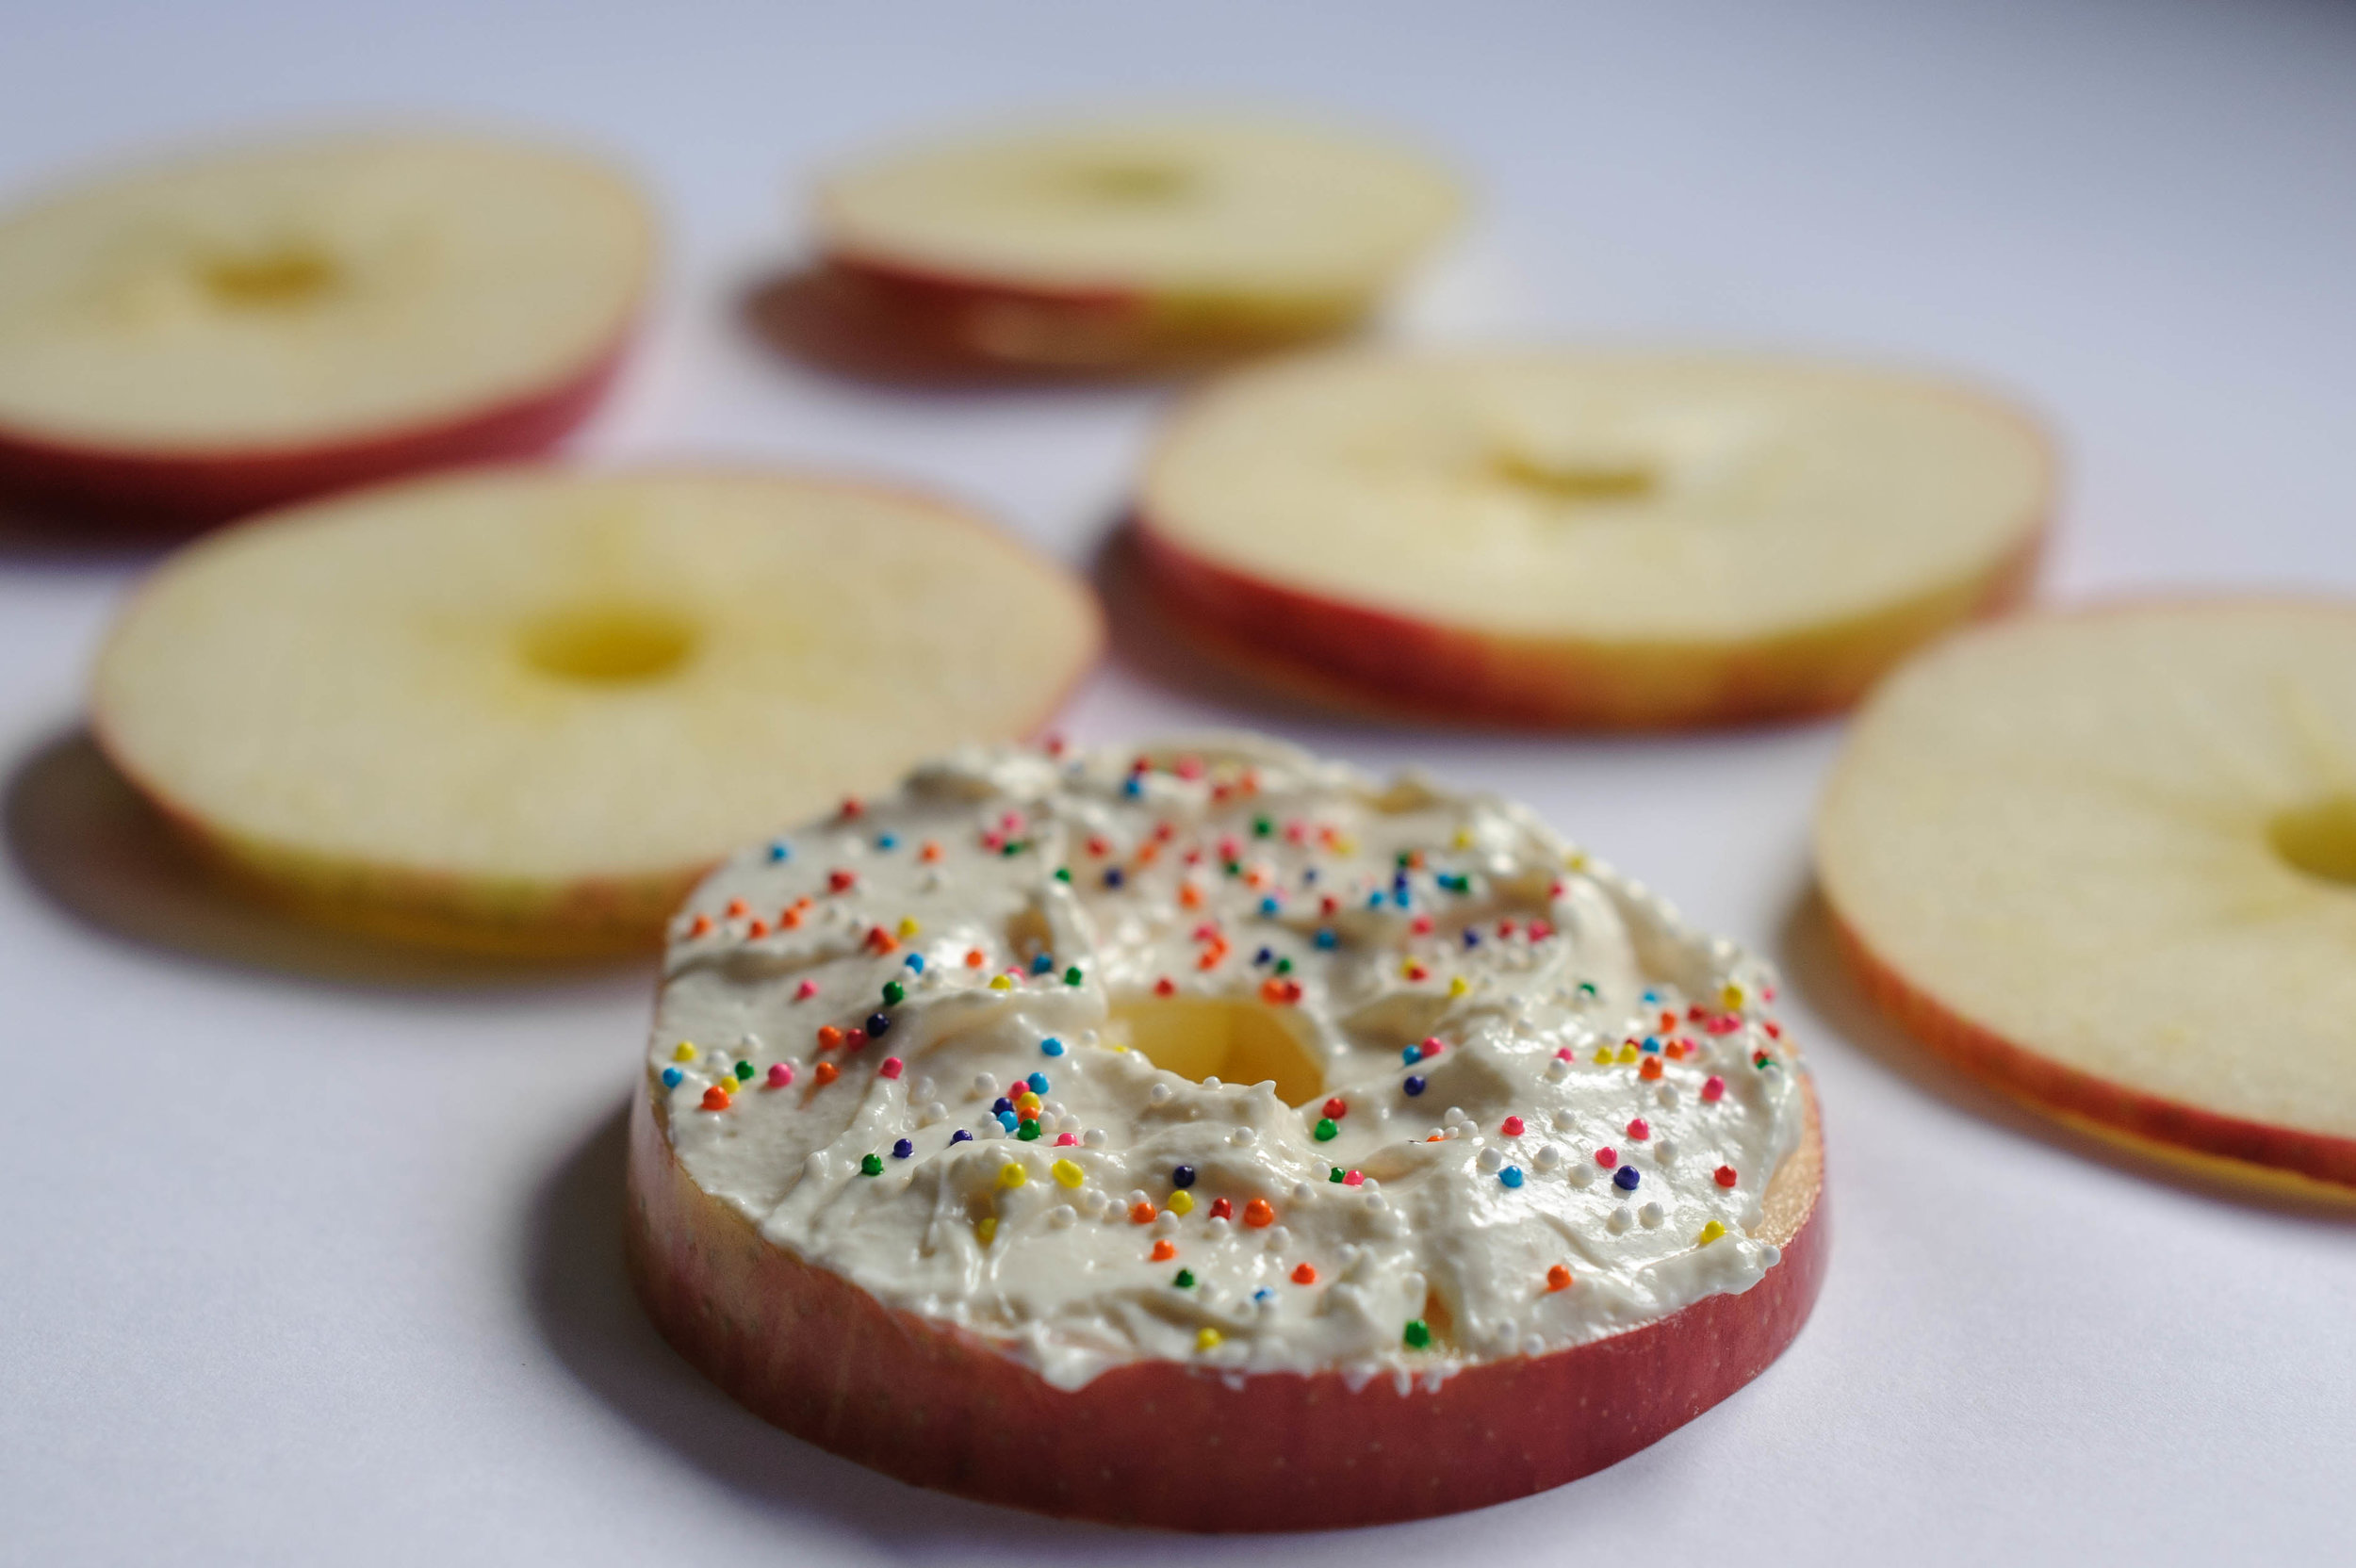 White cream cheese frosted apple slice